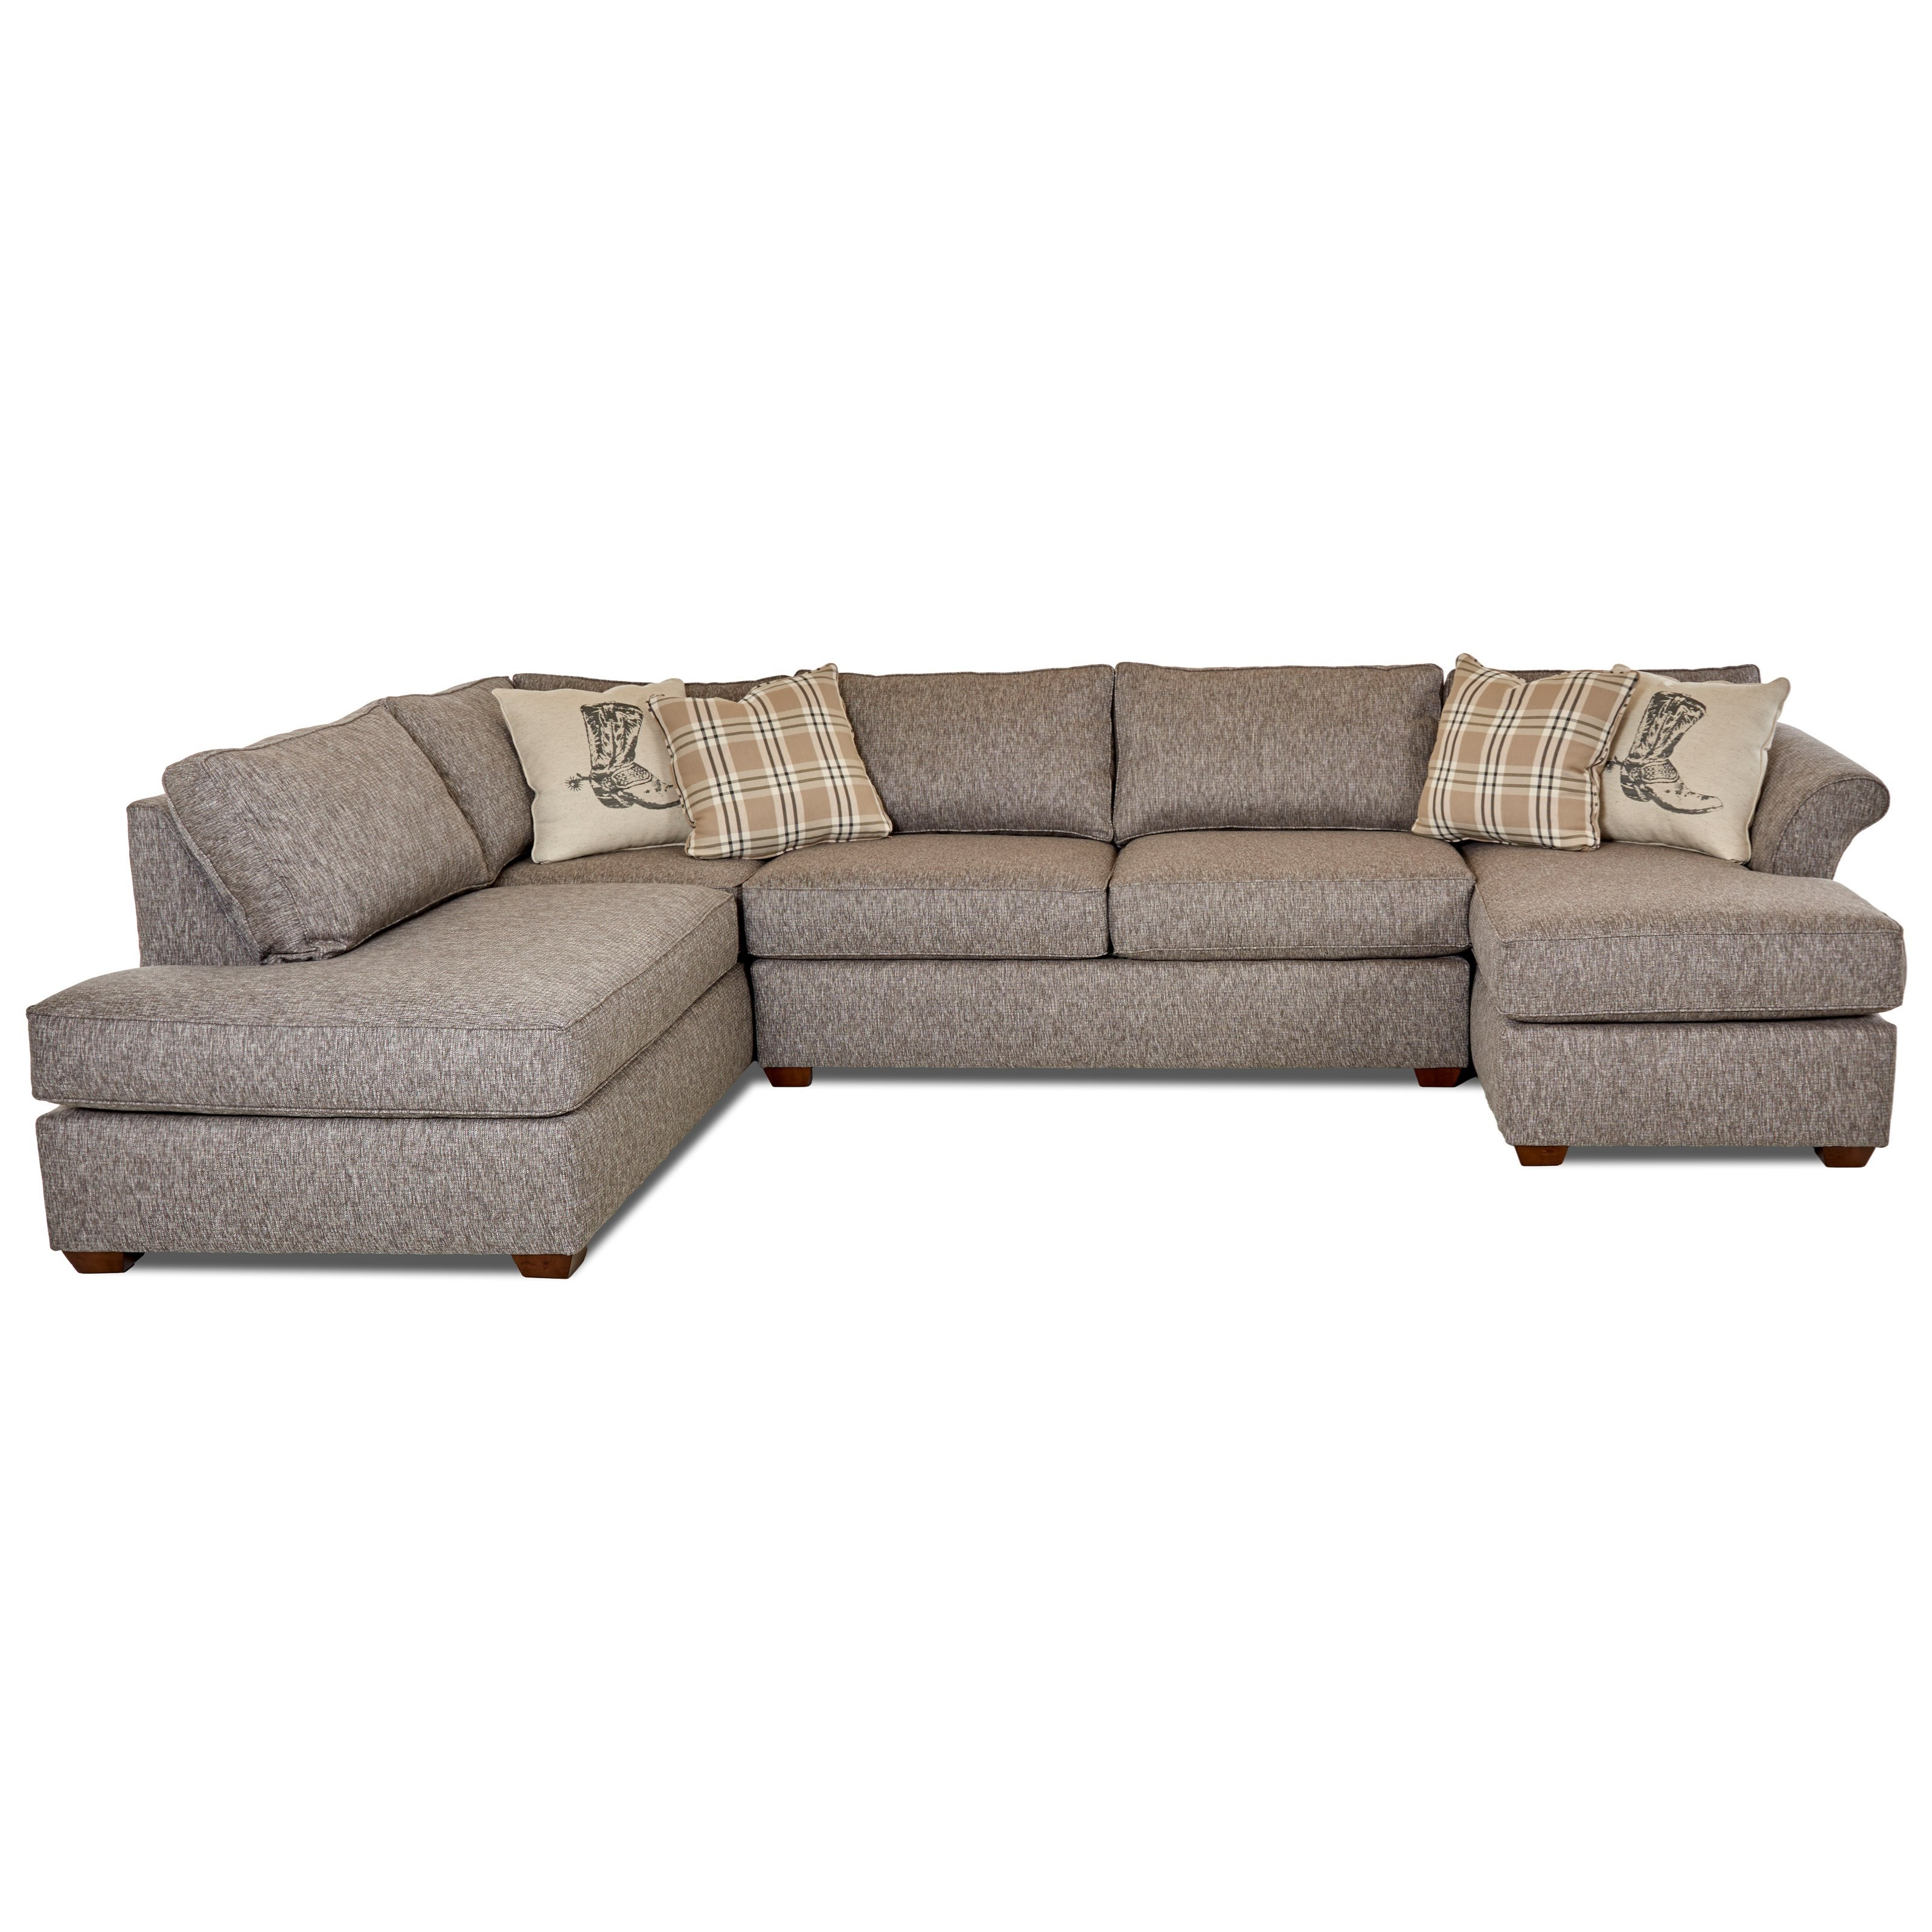 Three Piece Sectional Sofa with Flared Arms and LAF Sofa Chaise